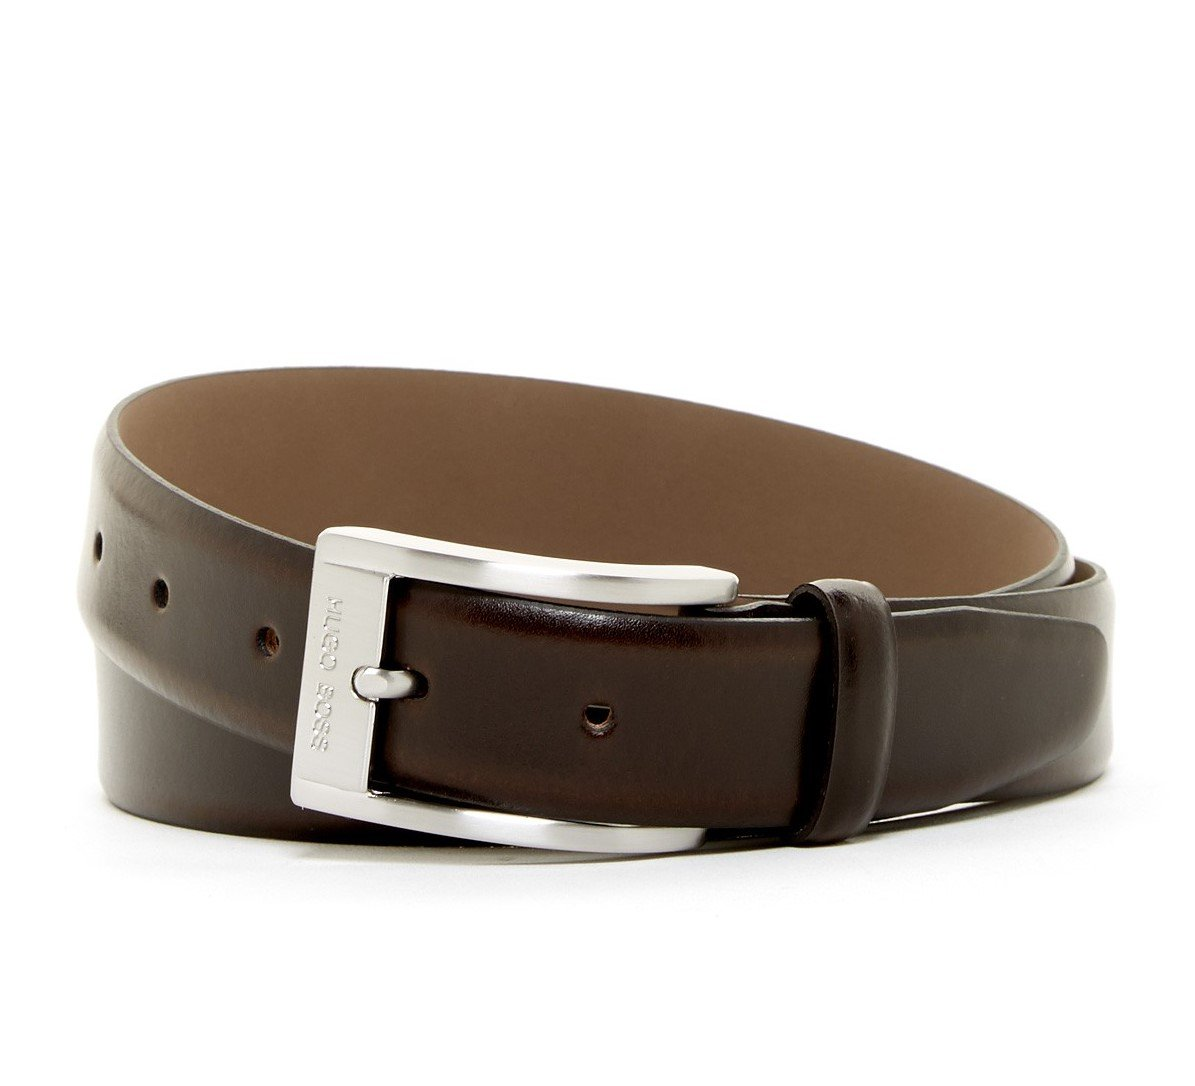 Hugo Boss Men's Ugos Leather Belt, size 34, Dark Brown